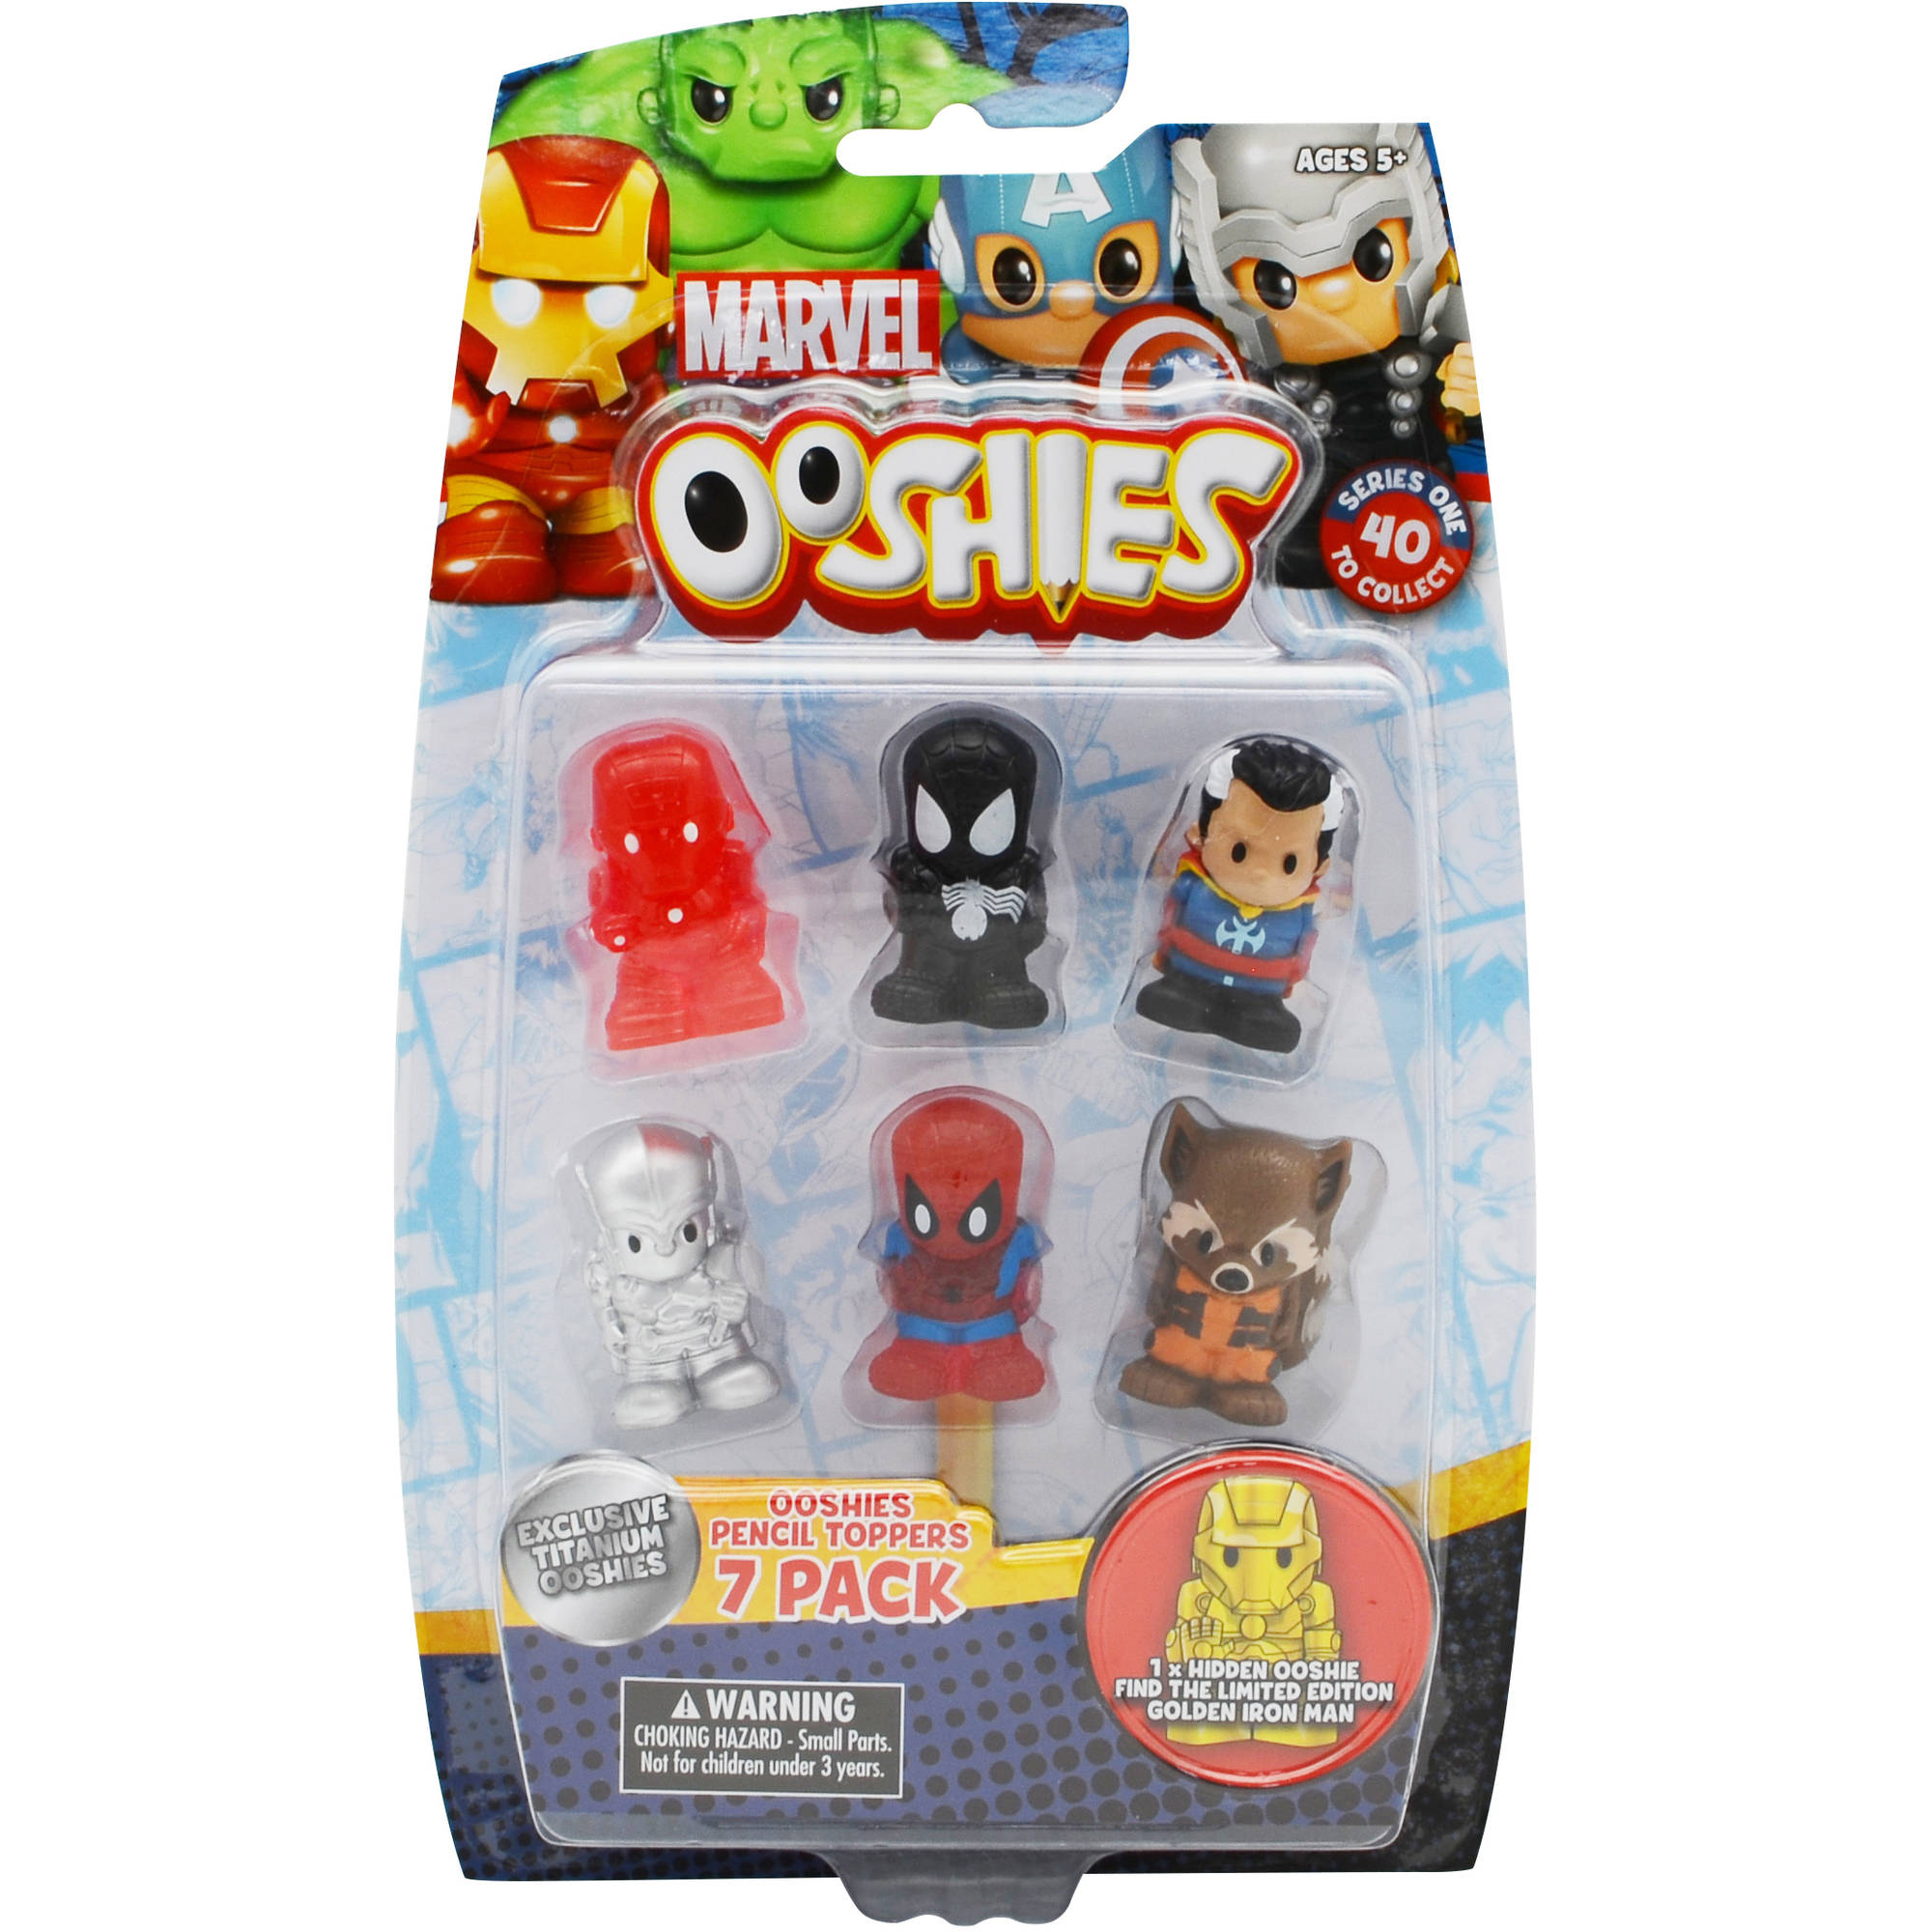 Ooshies 4 Pack figures Pencil toppers Marvel 4 styles to choose from NEW